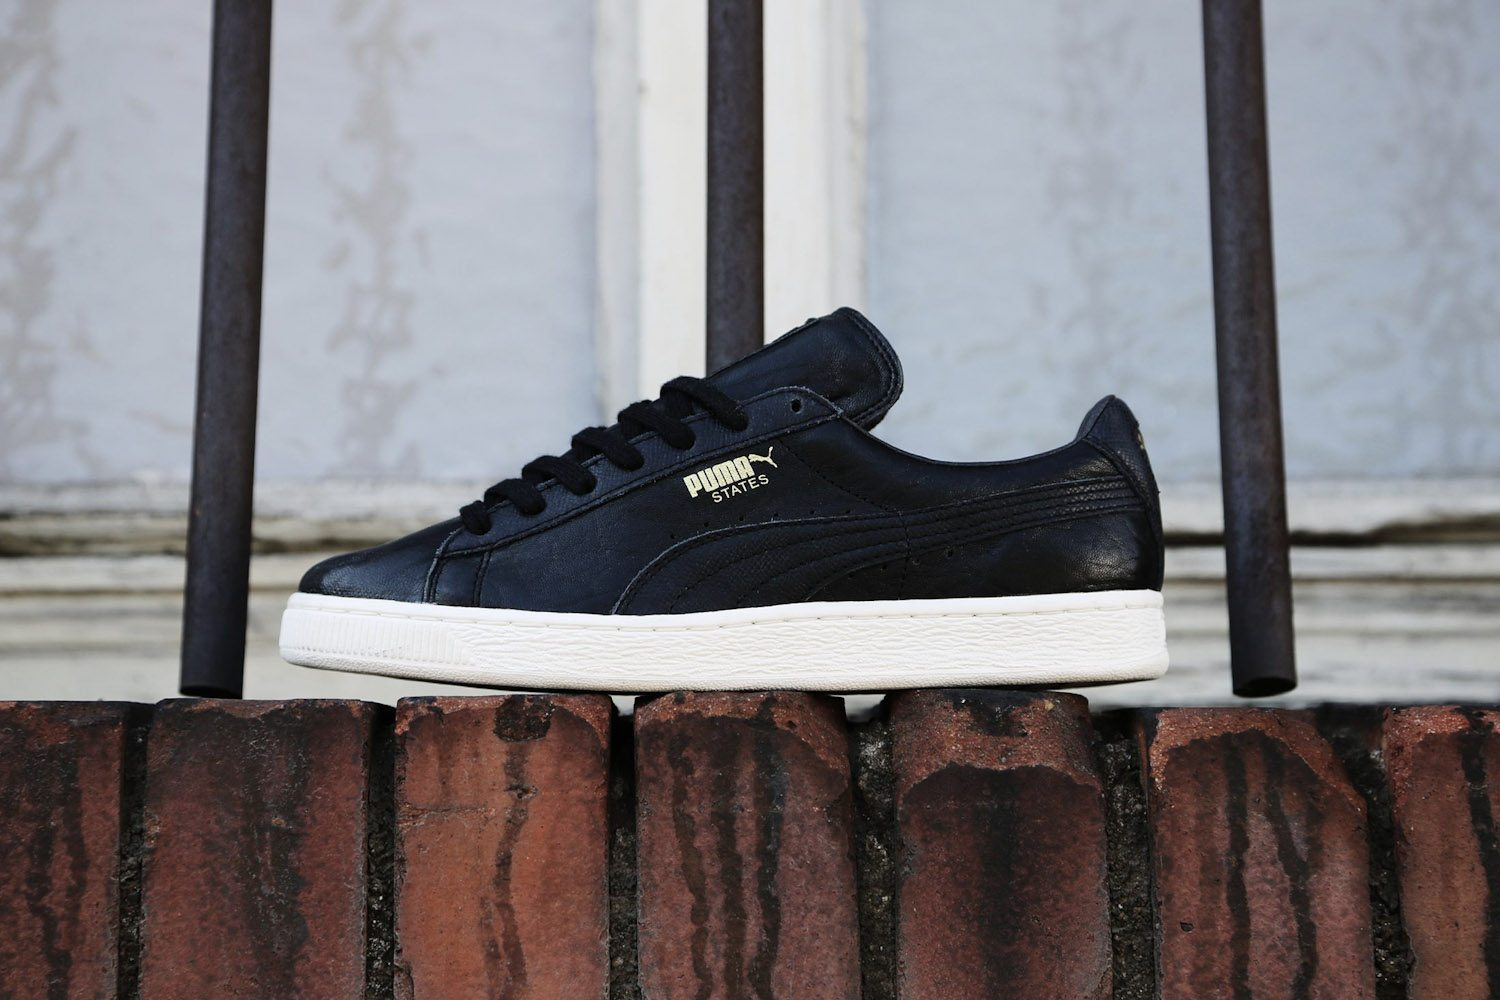 PUMA States Premium Leather Pack 5